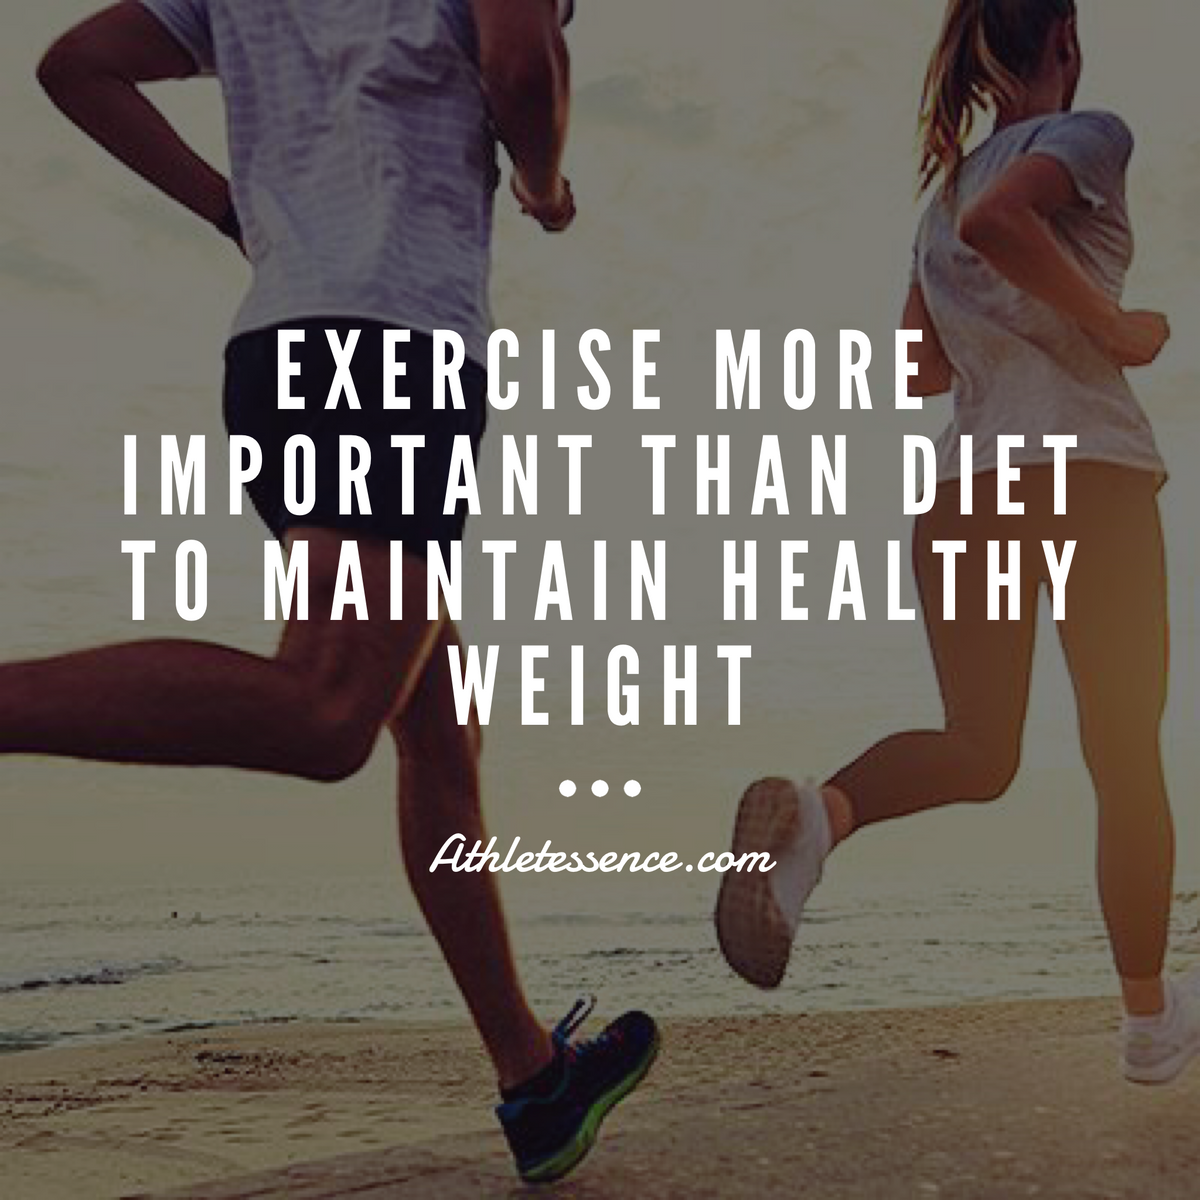 Study Shows Exercise More Important Than Diet to Maintain Weight Loss